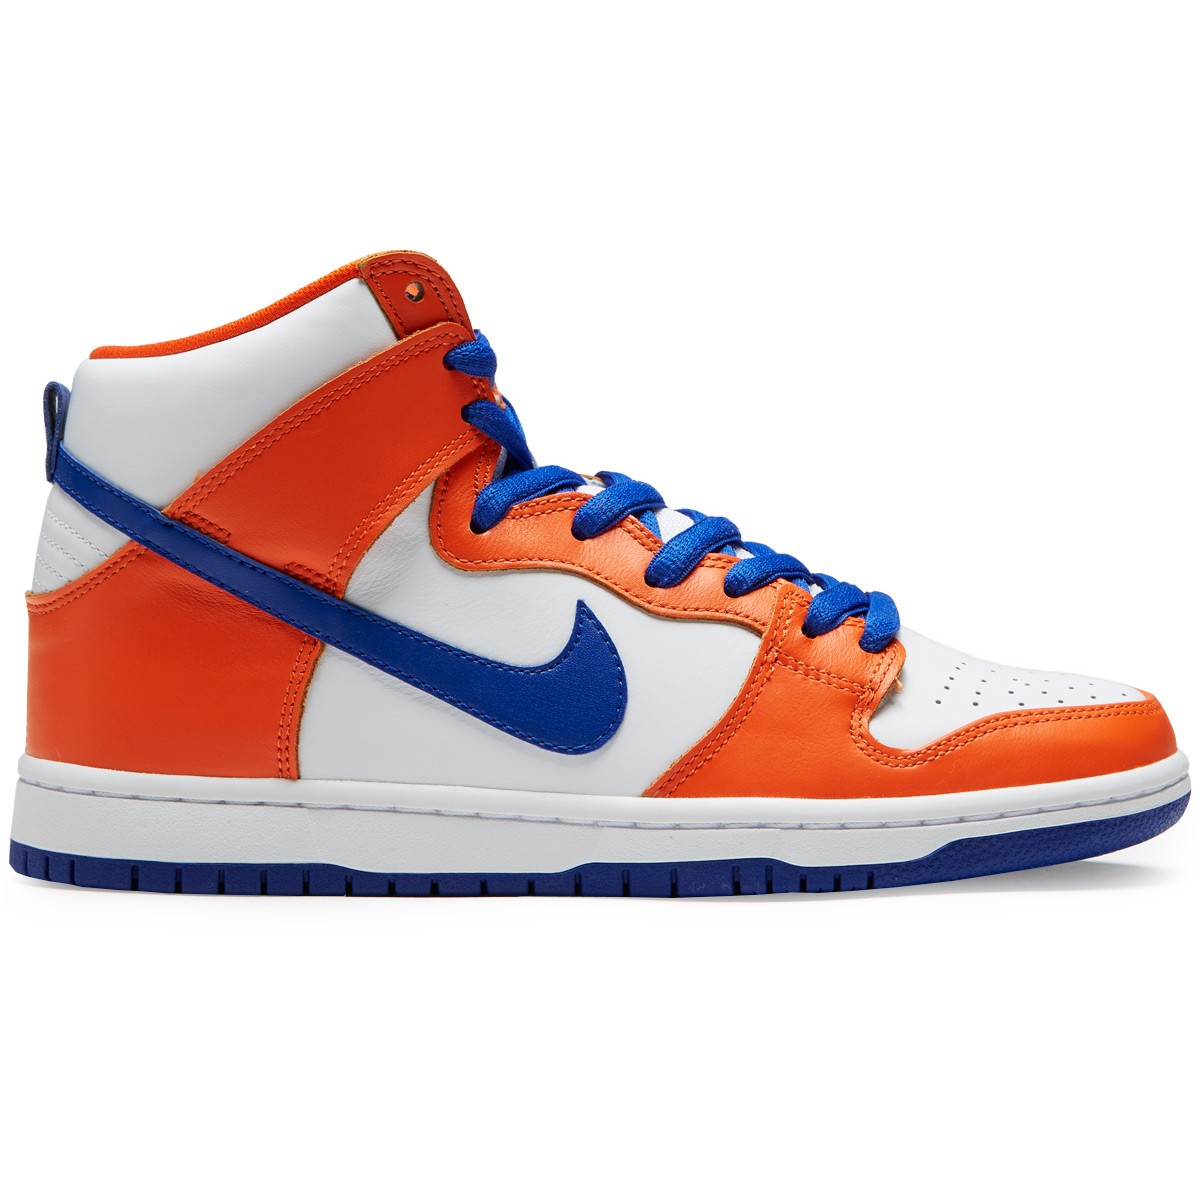 super popular 5942f 9629b Nike SB Dunk High Danny Supa QS Shoes